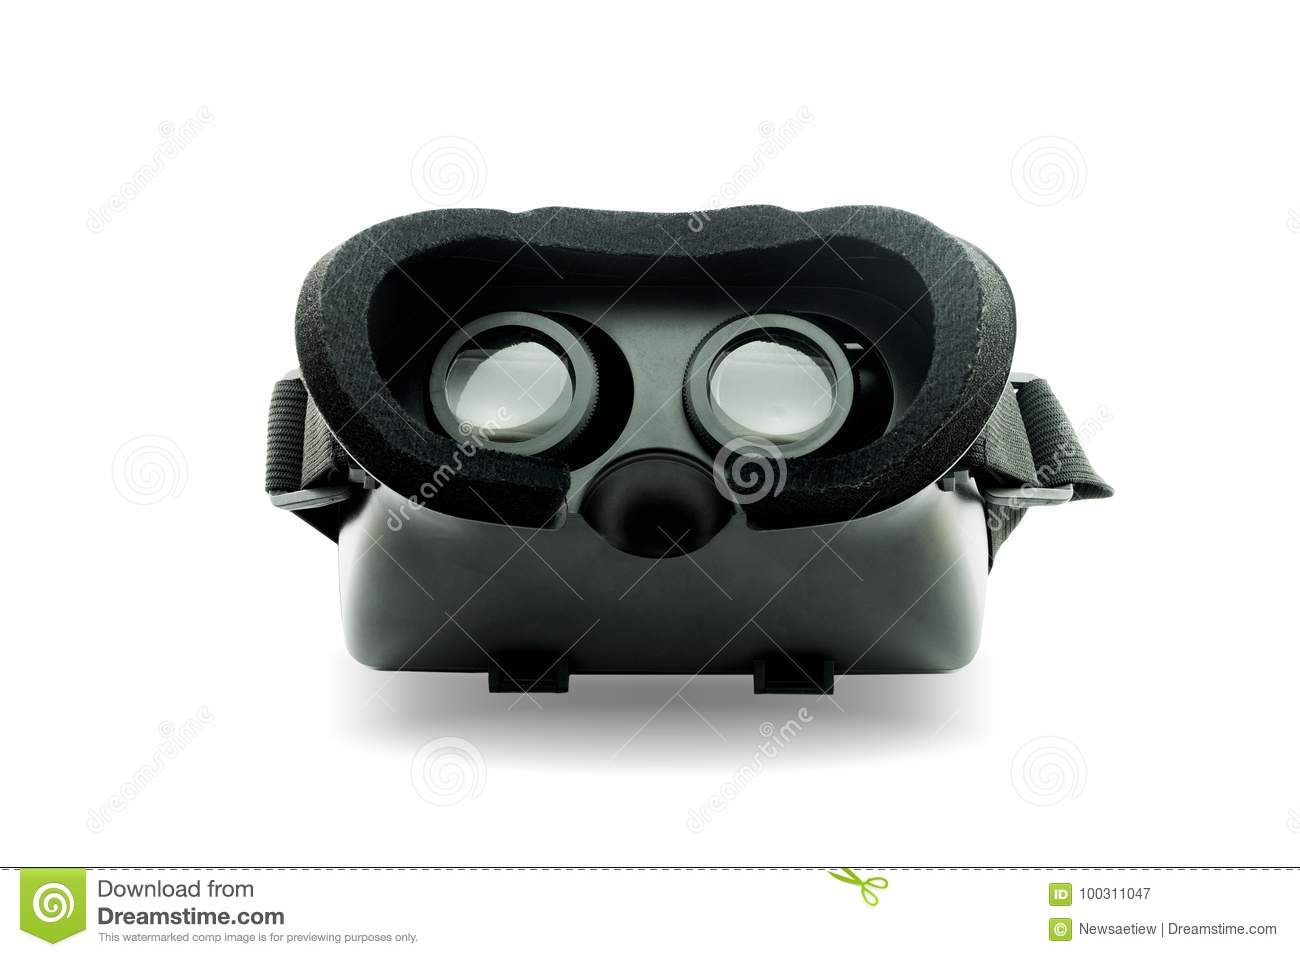 Virtual reality helmet isolated on white background., This has c